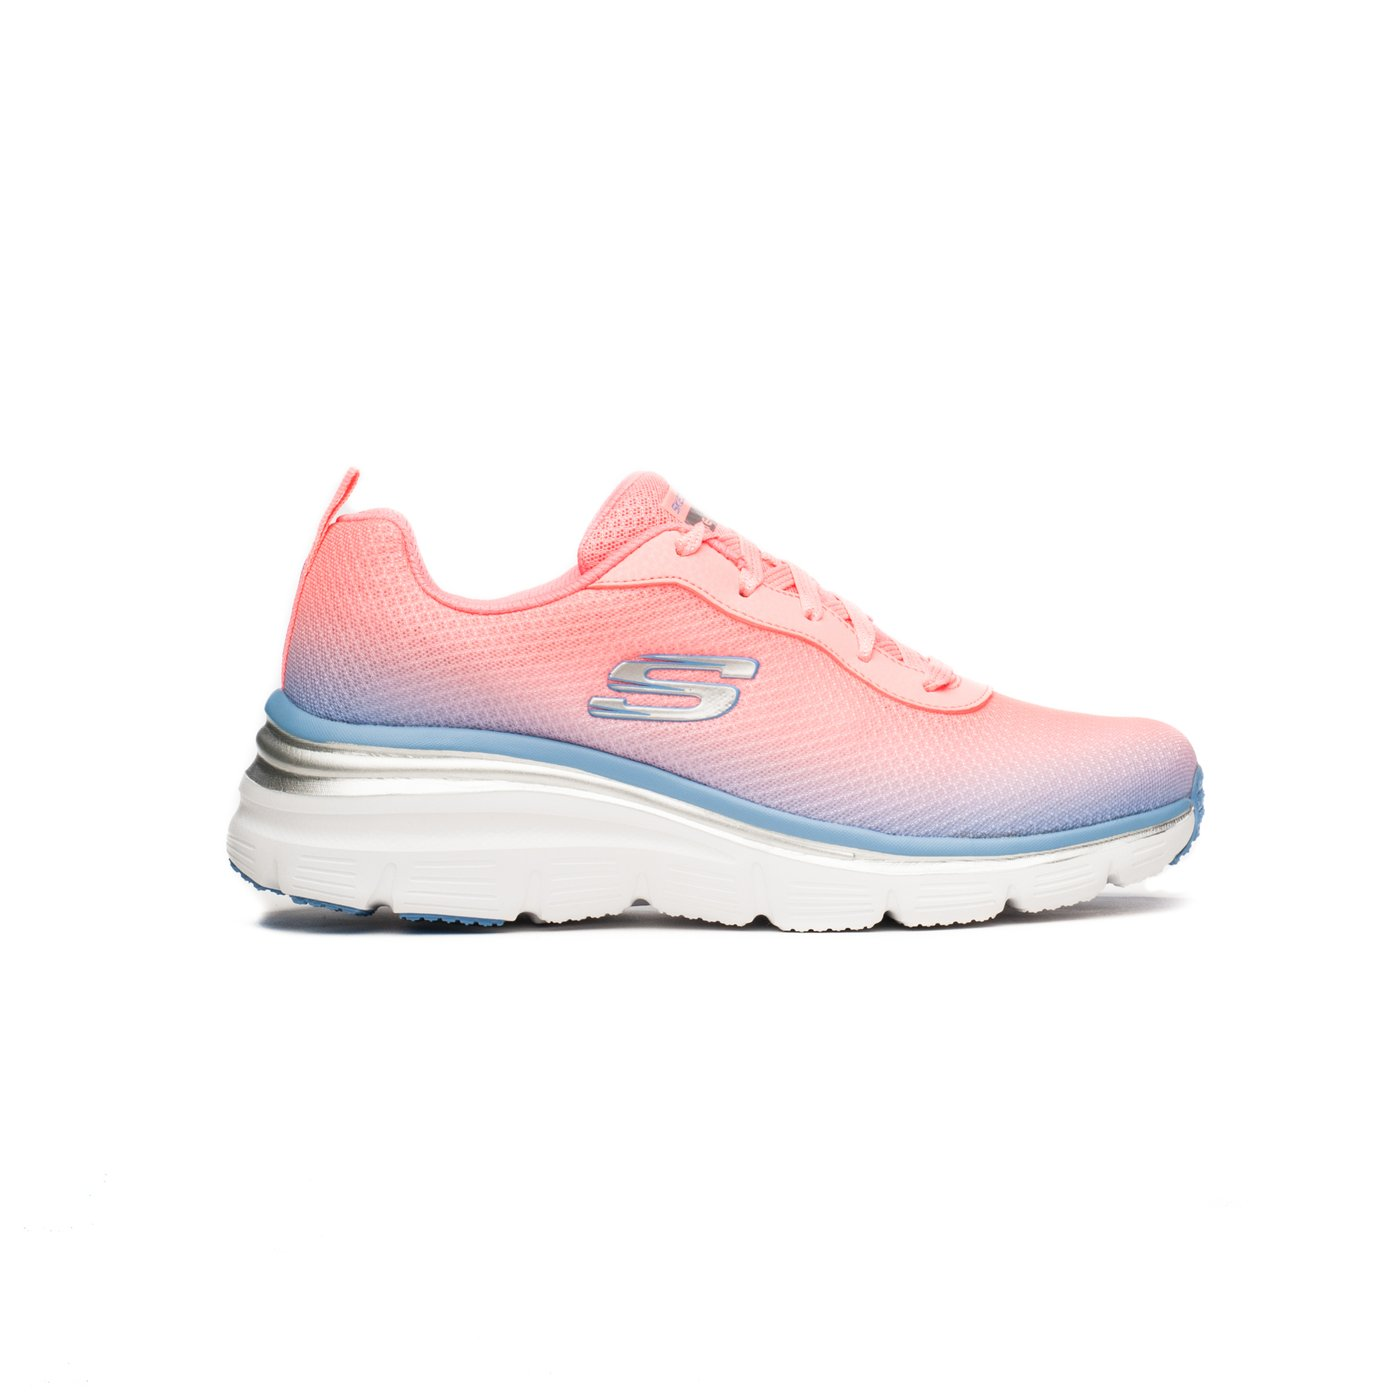 Кросівки жіночі Skechers FASHION FIT BUILD UP